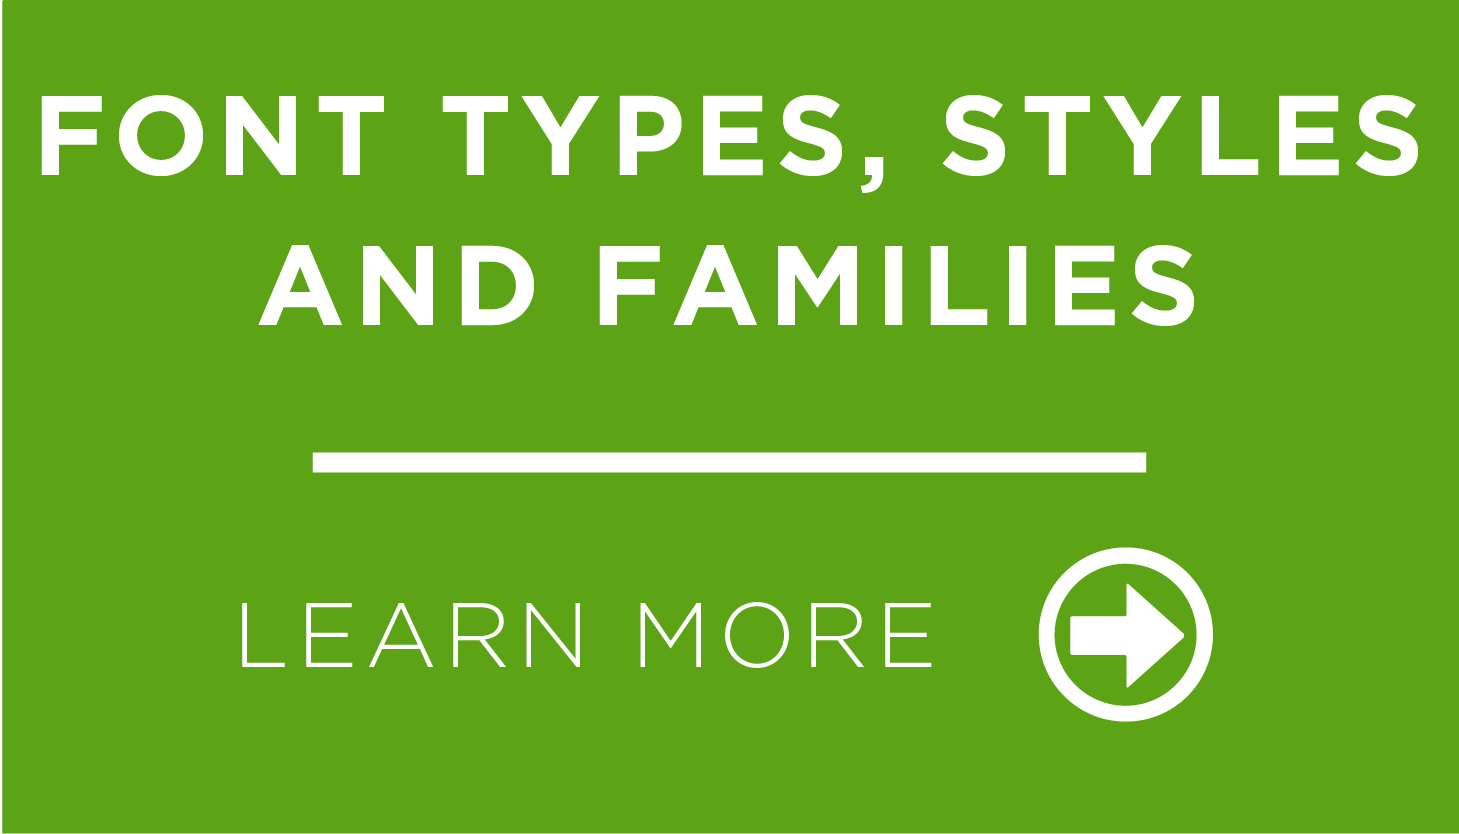 Font Types, Styles and Families